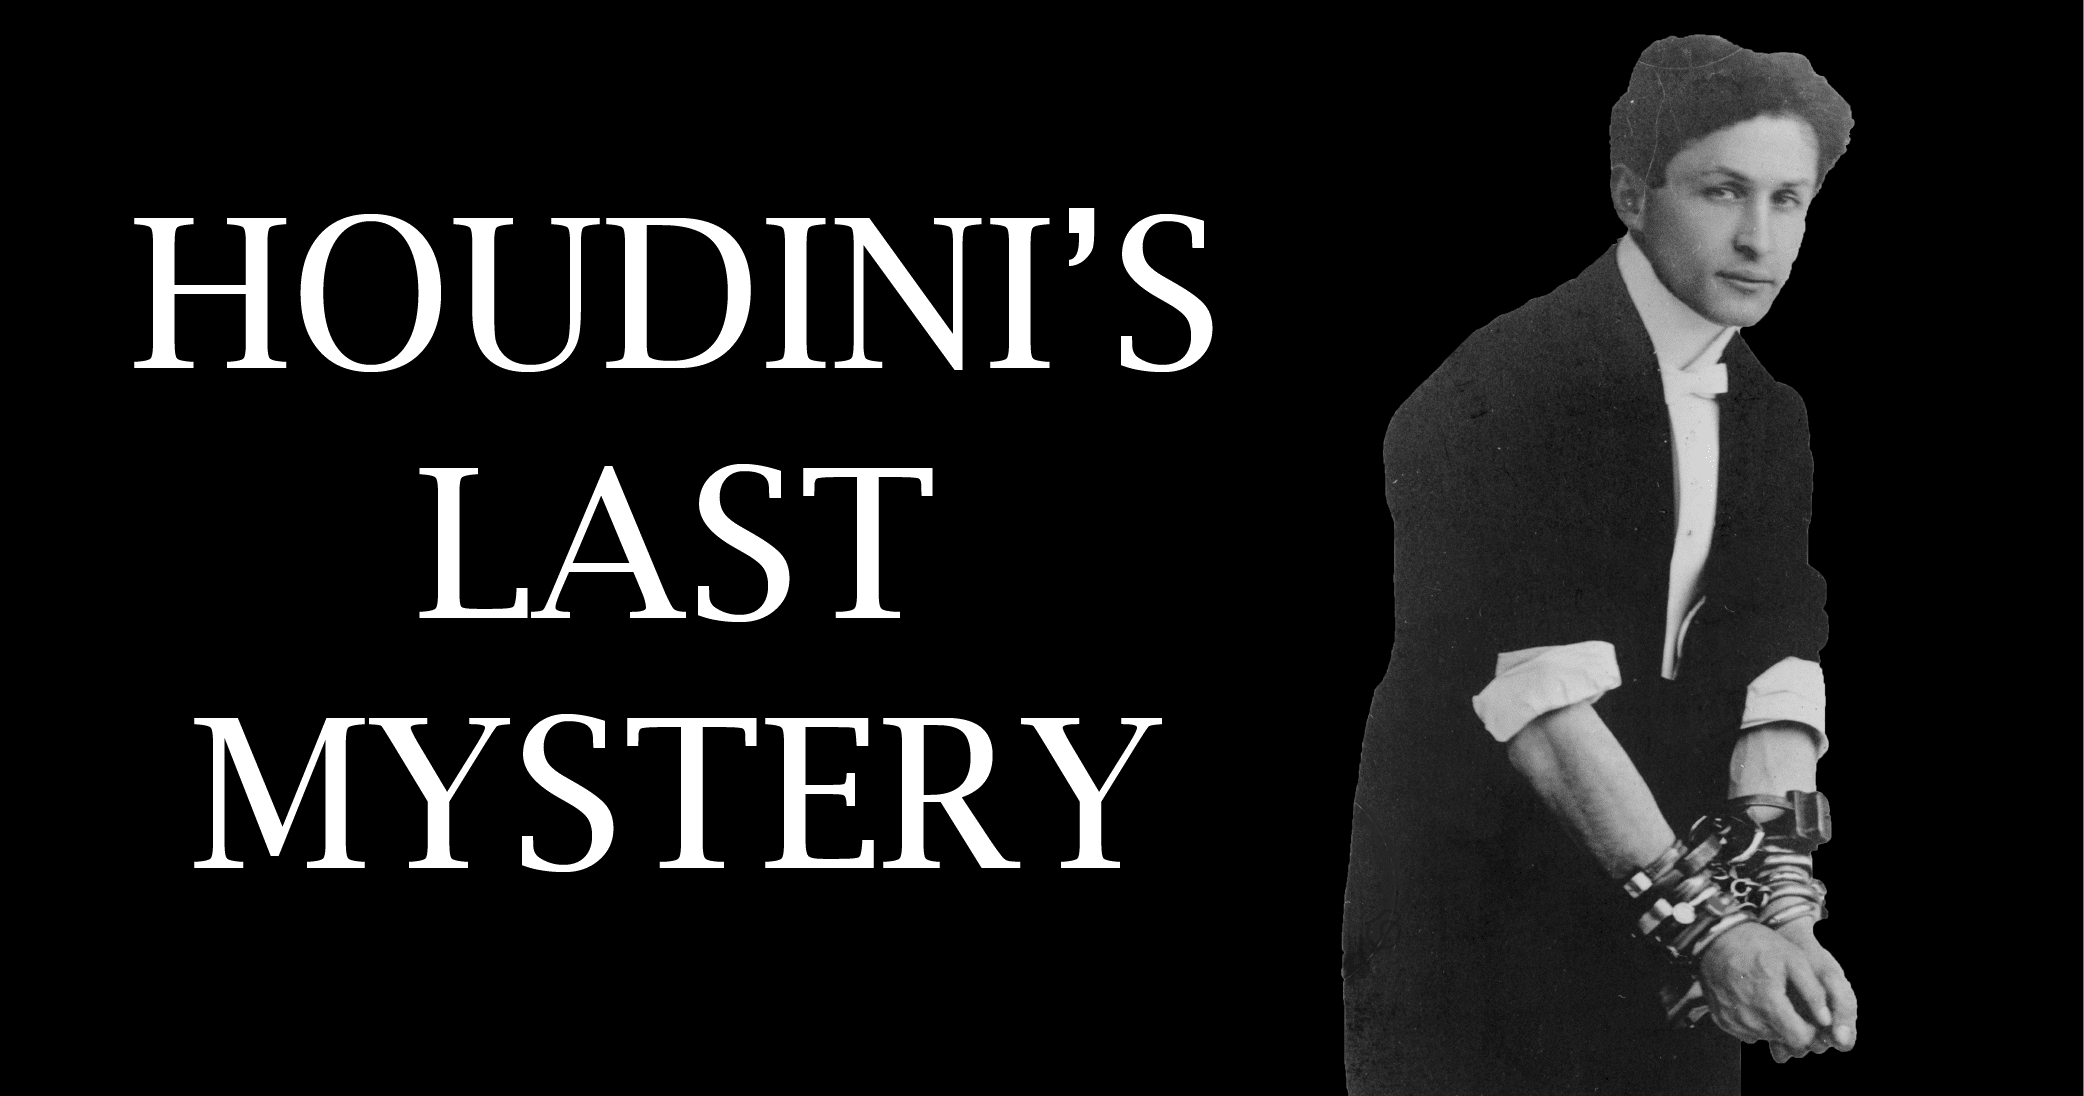 Houdini's Last Mystery Online Escape Room Game